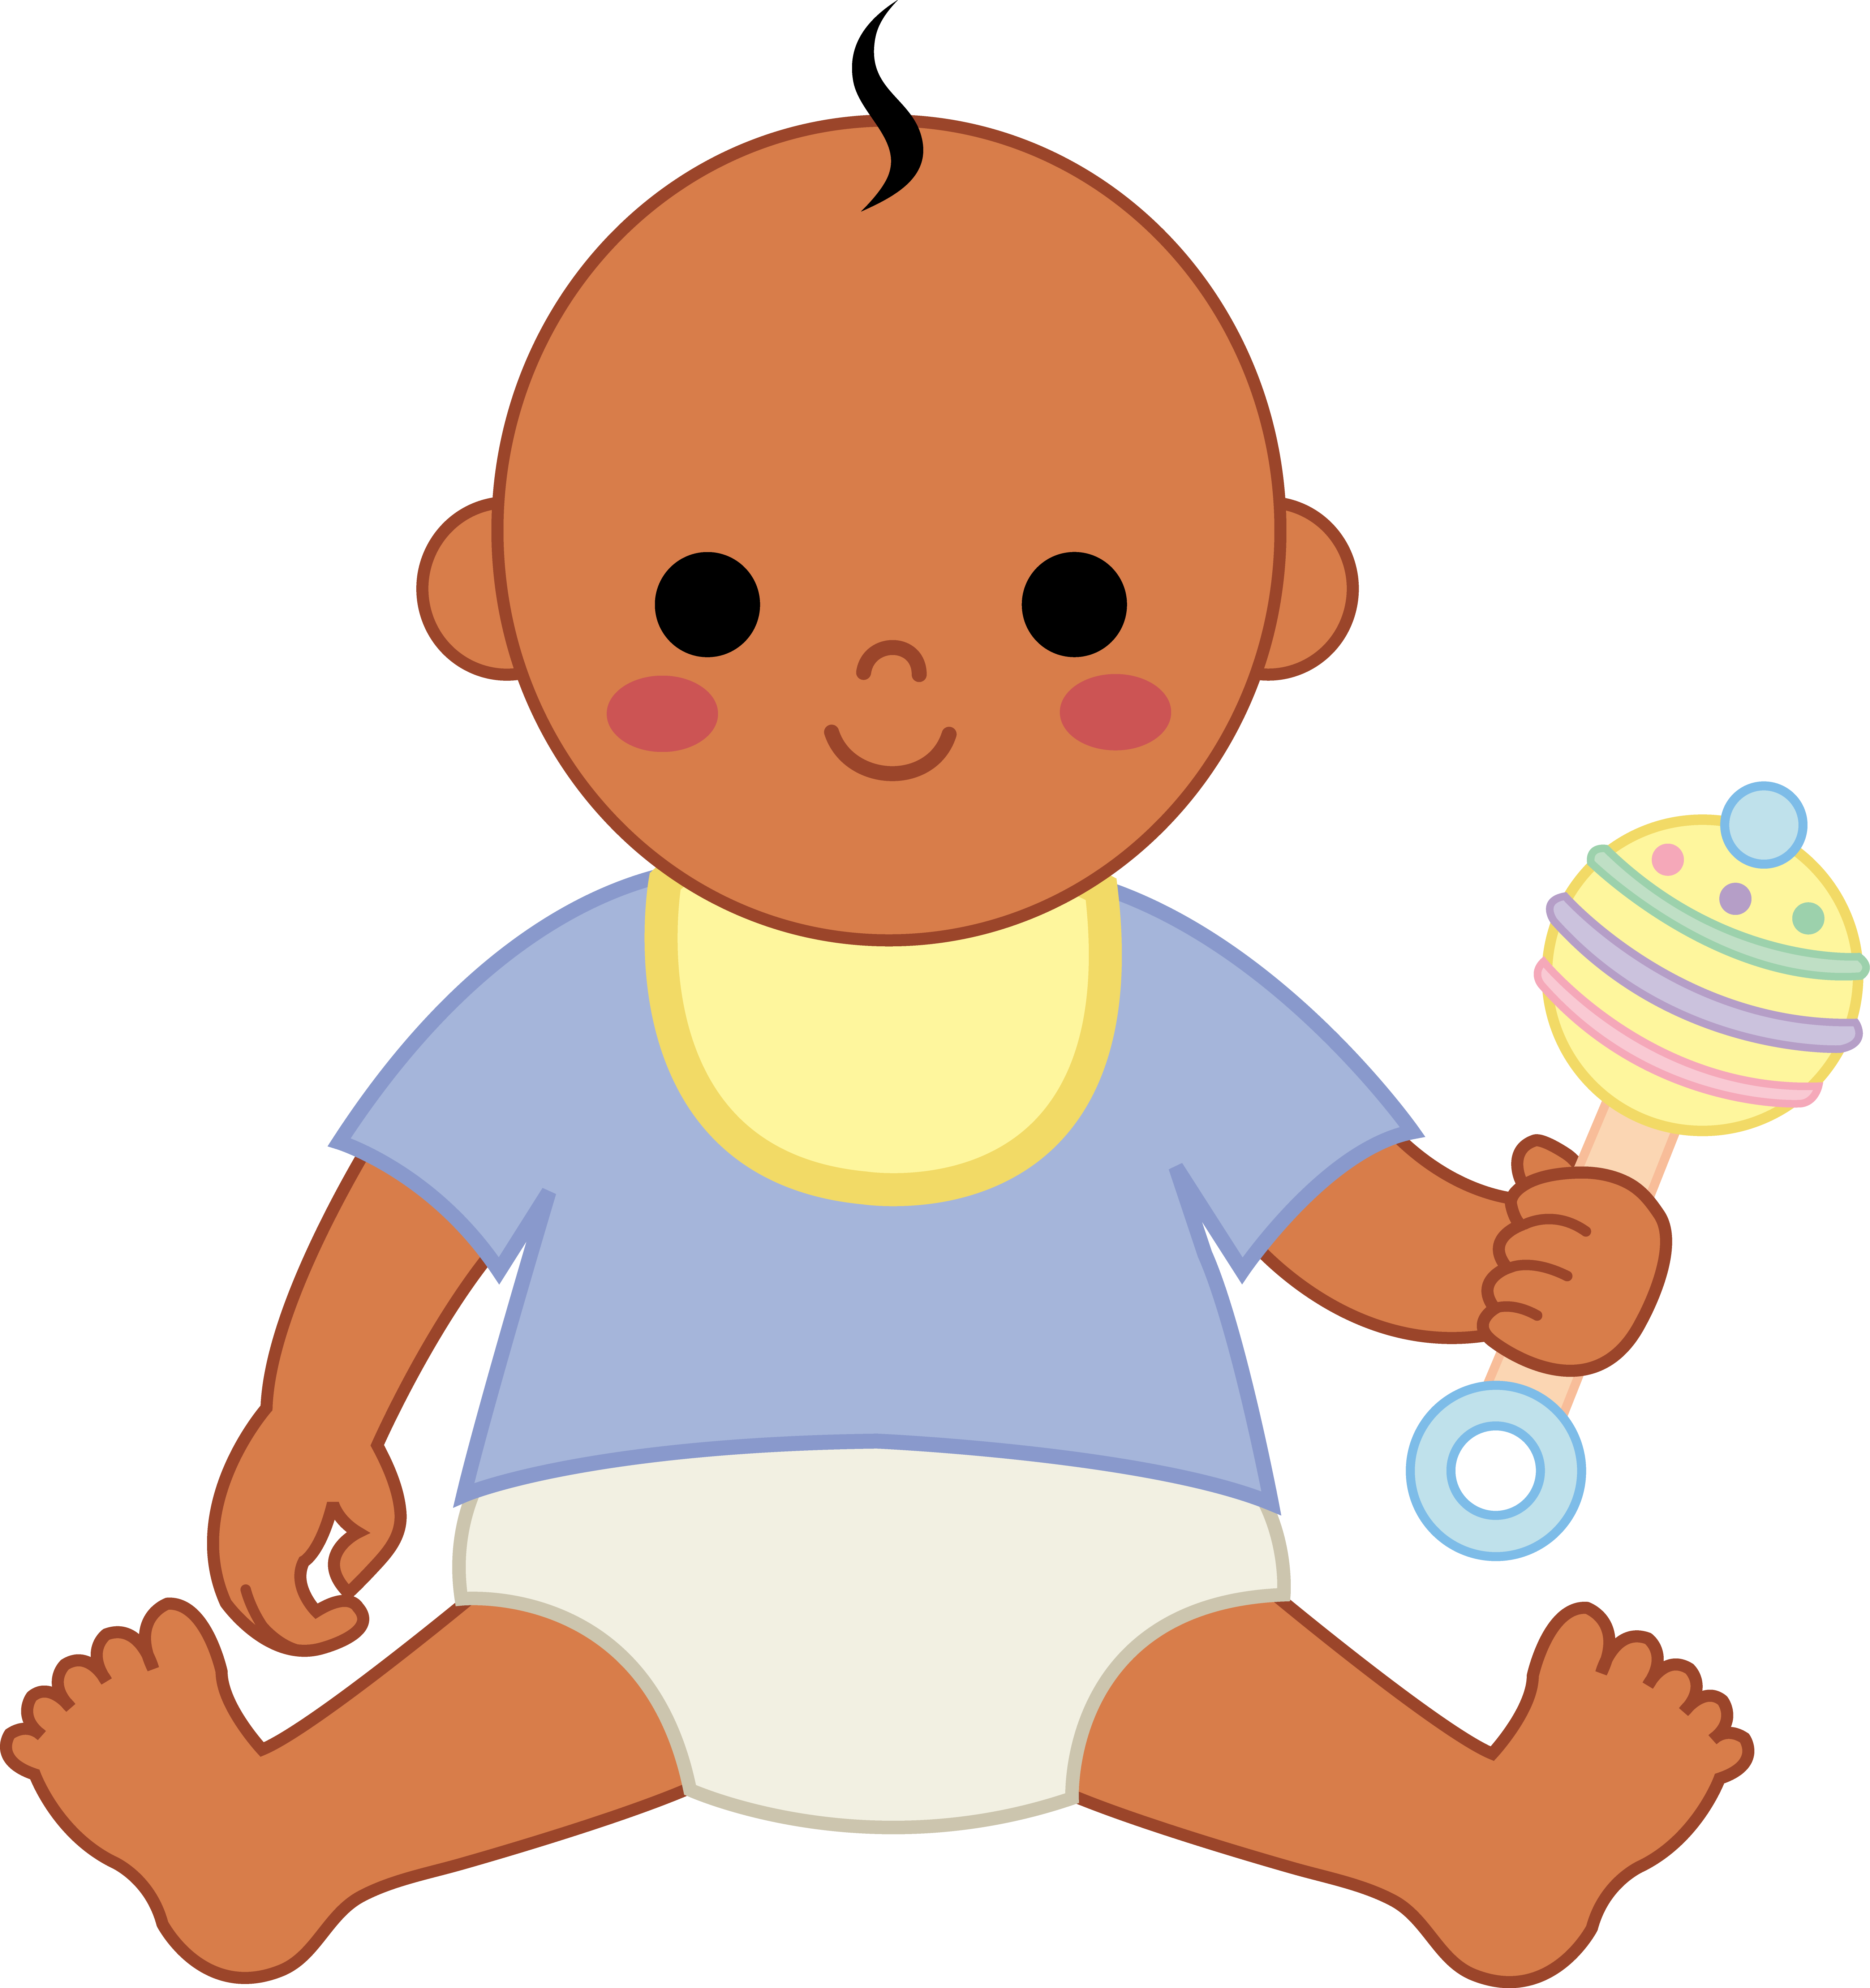 Clip Art Baby Elephant | Clipart Panda - Free Clipart Images